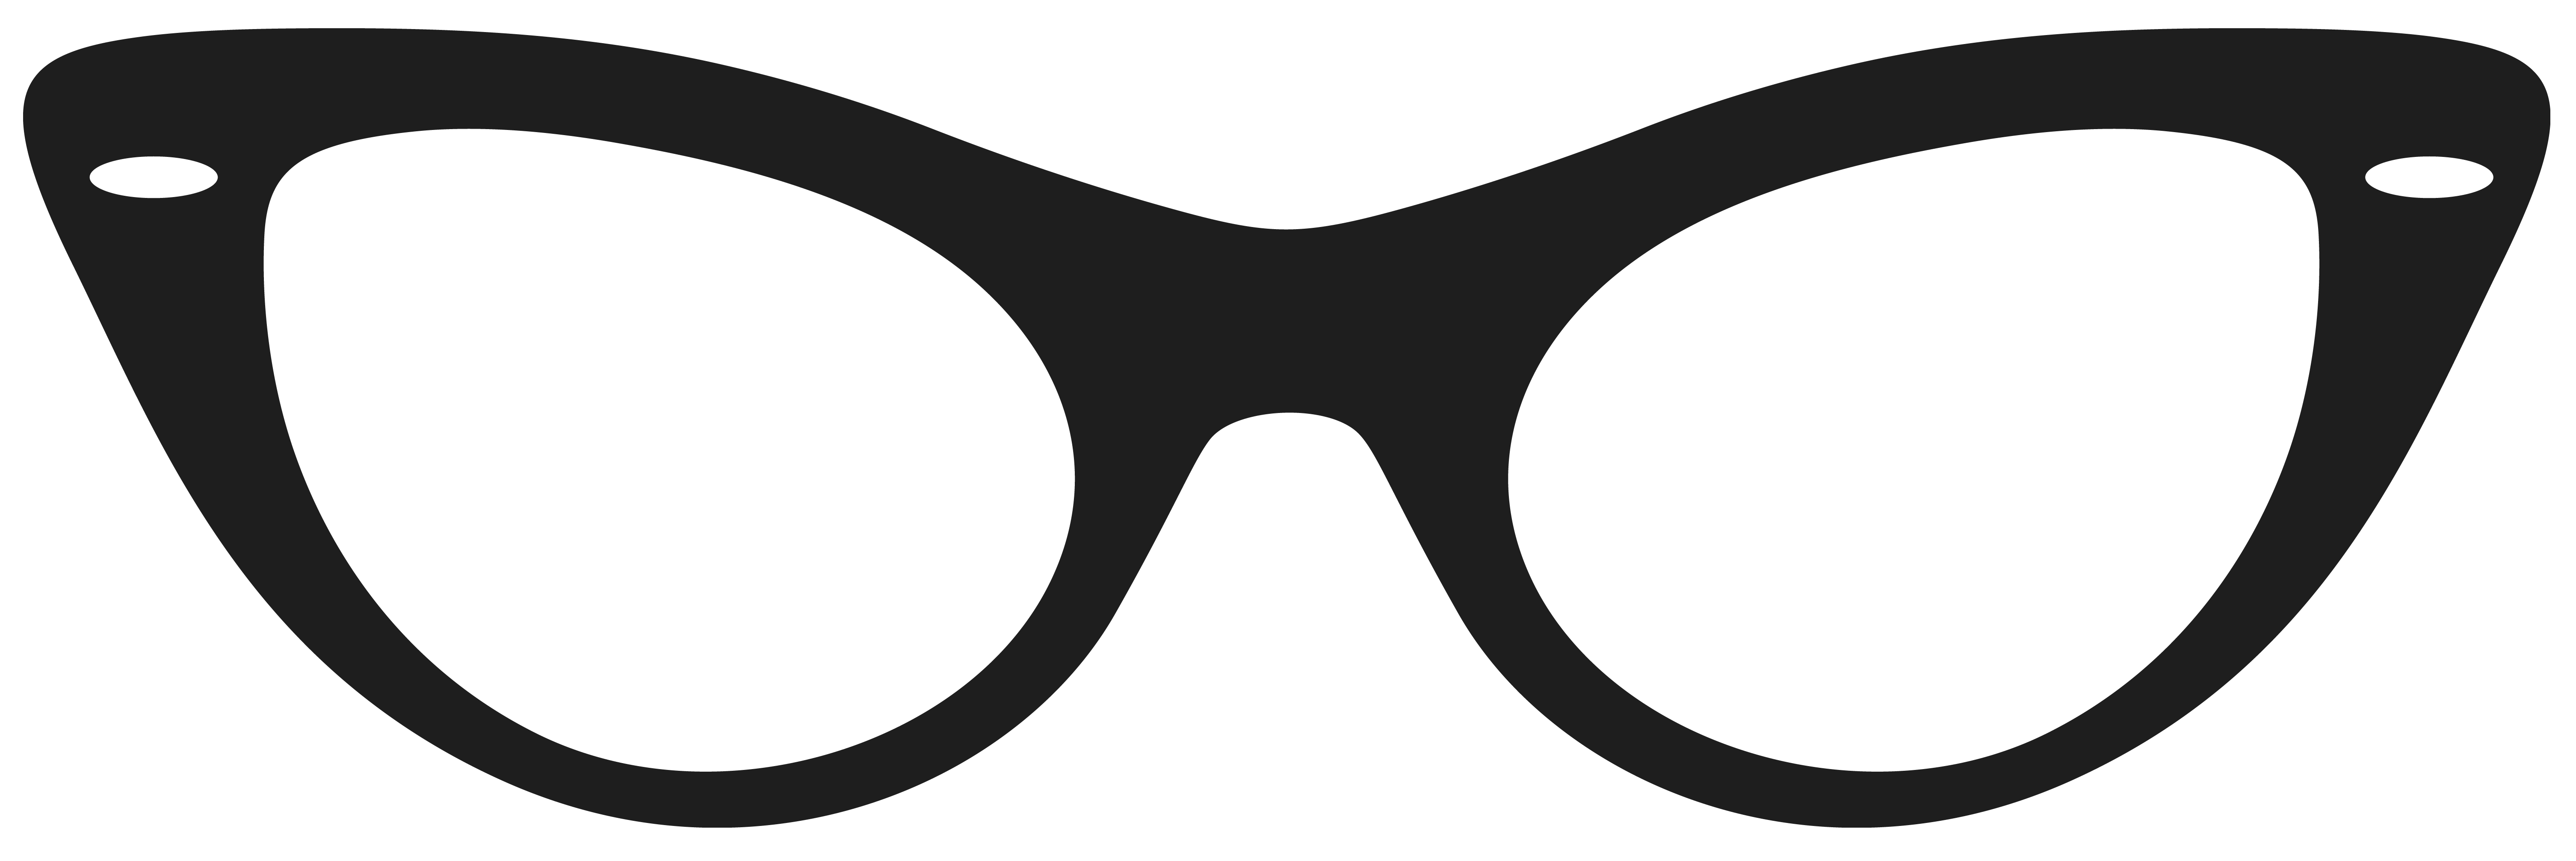 clipart sunglasses black and white